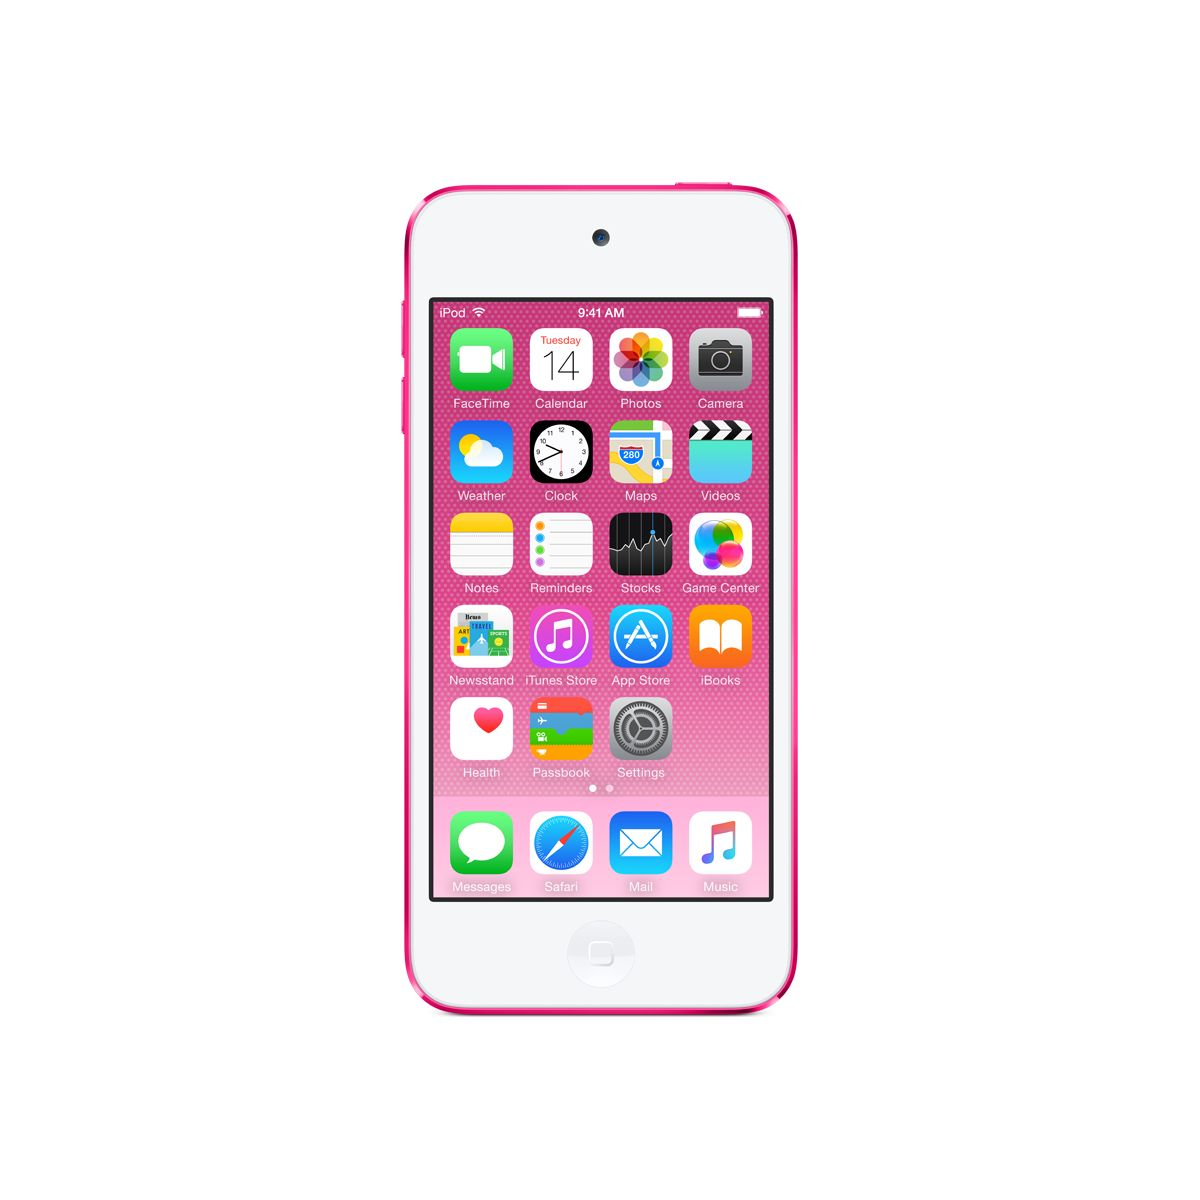 Apple ipod touch 16 go rose - livraison offerte : code livdom (photo)